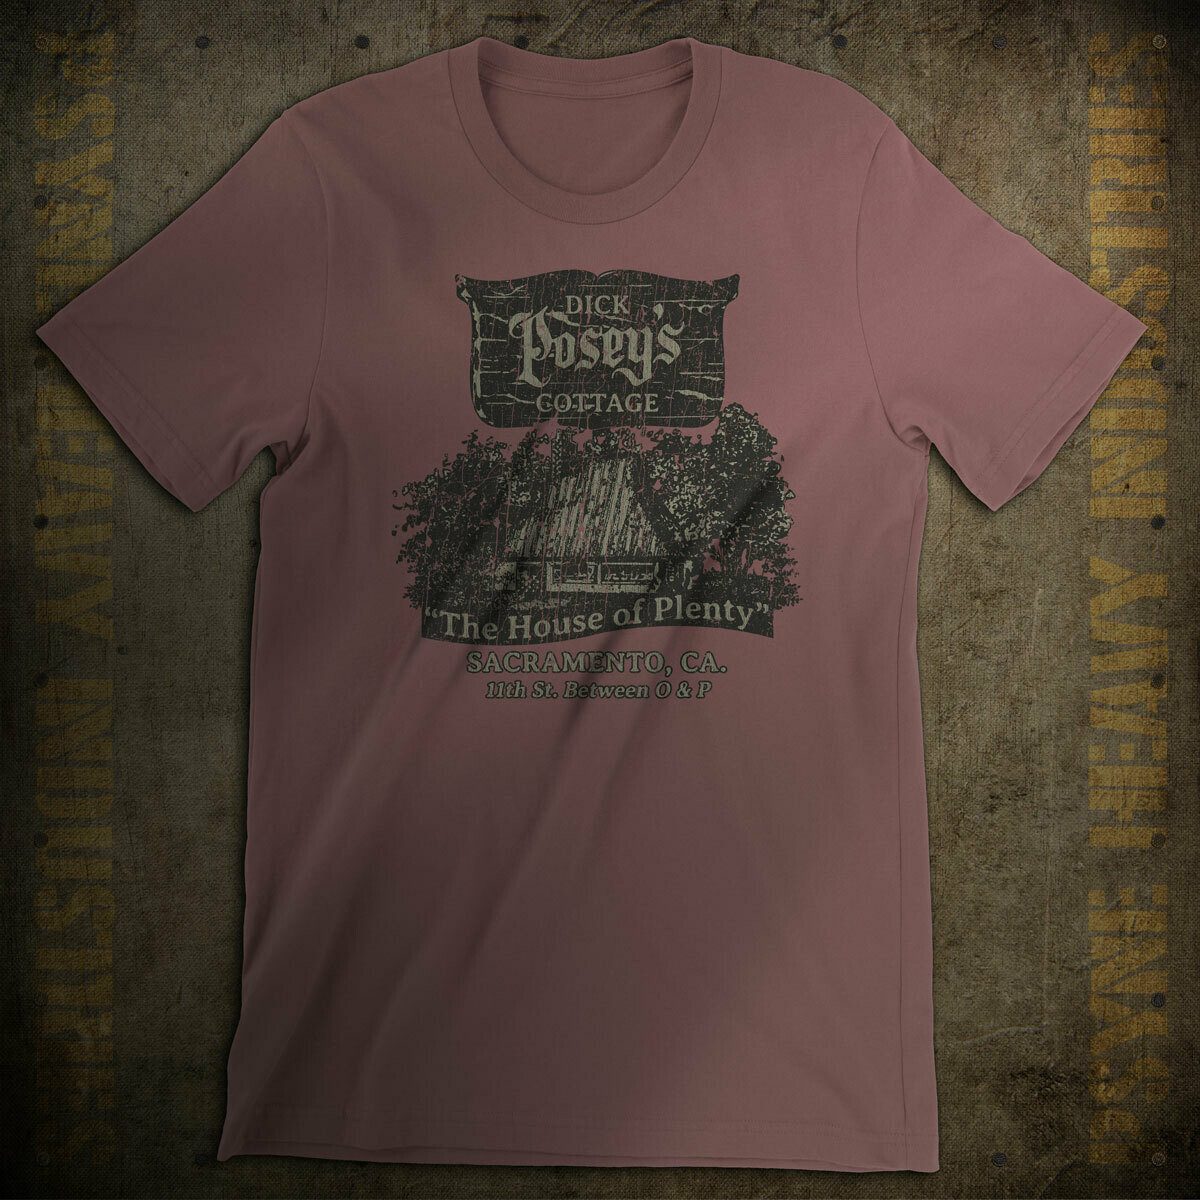 Dick Posey's Cottage Vintage T-Shirt